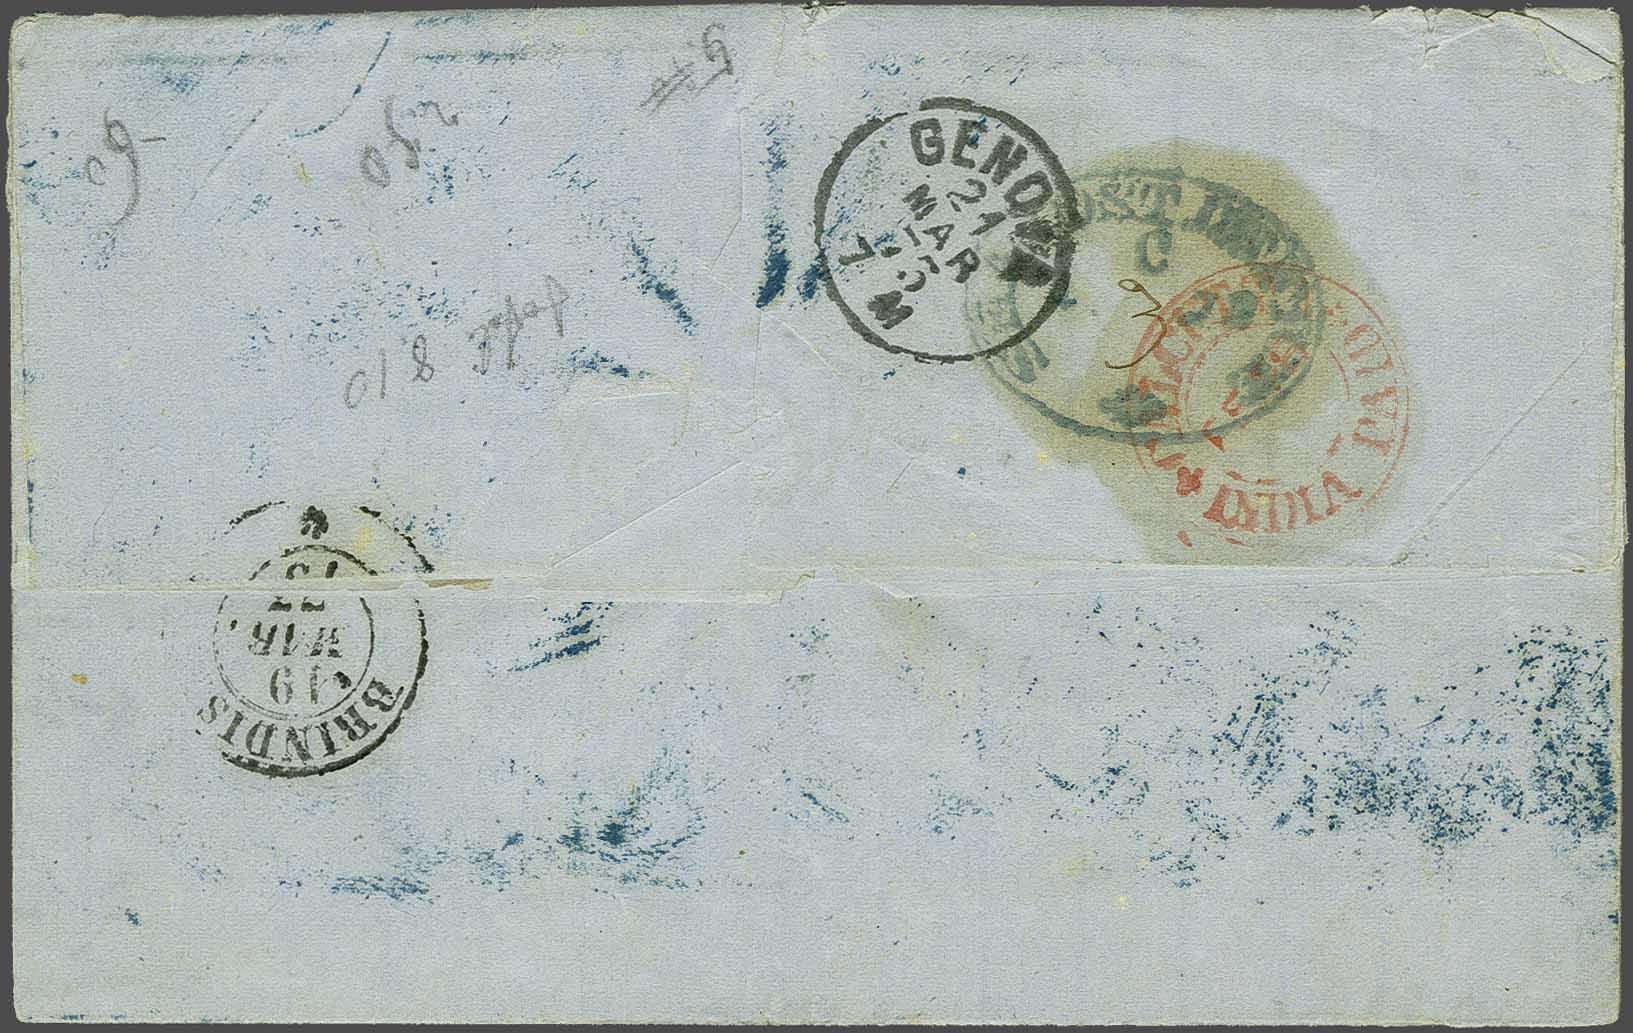 Lot 460 - Great Britain and former colonies india -  Corinphila Veilingen Auction 245-246 Day 1 - Nepal - The Dick van der Wateren Collection, Foreign countries - Single lots, Picture postcards